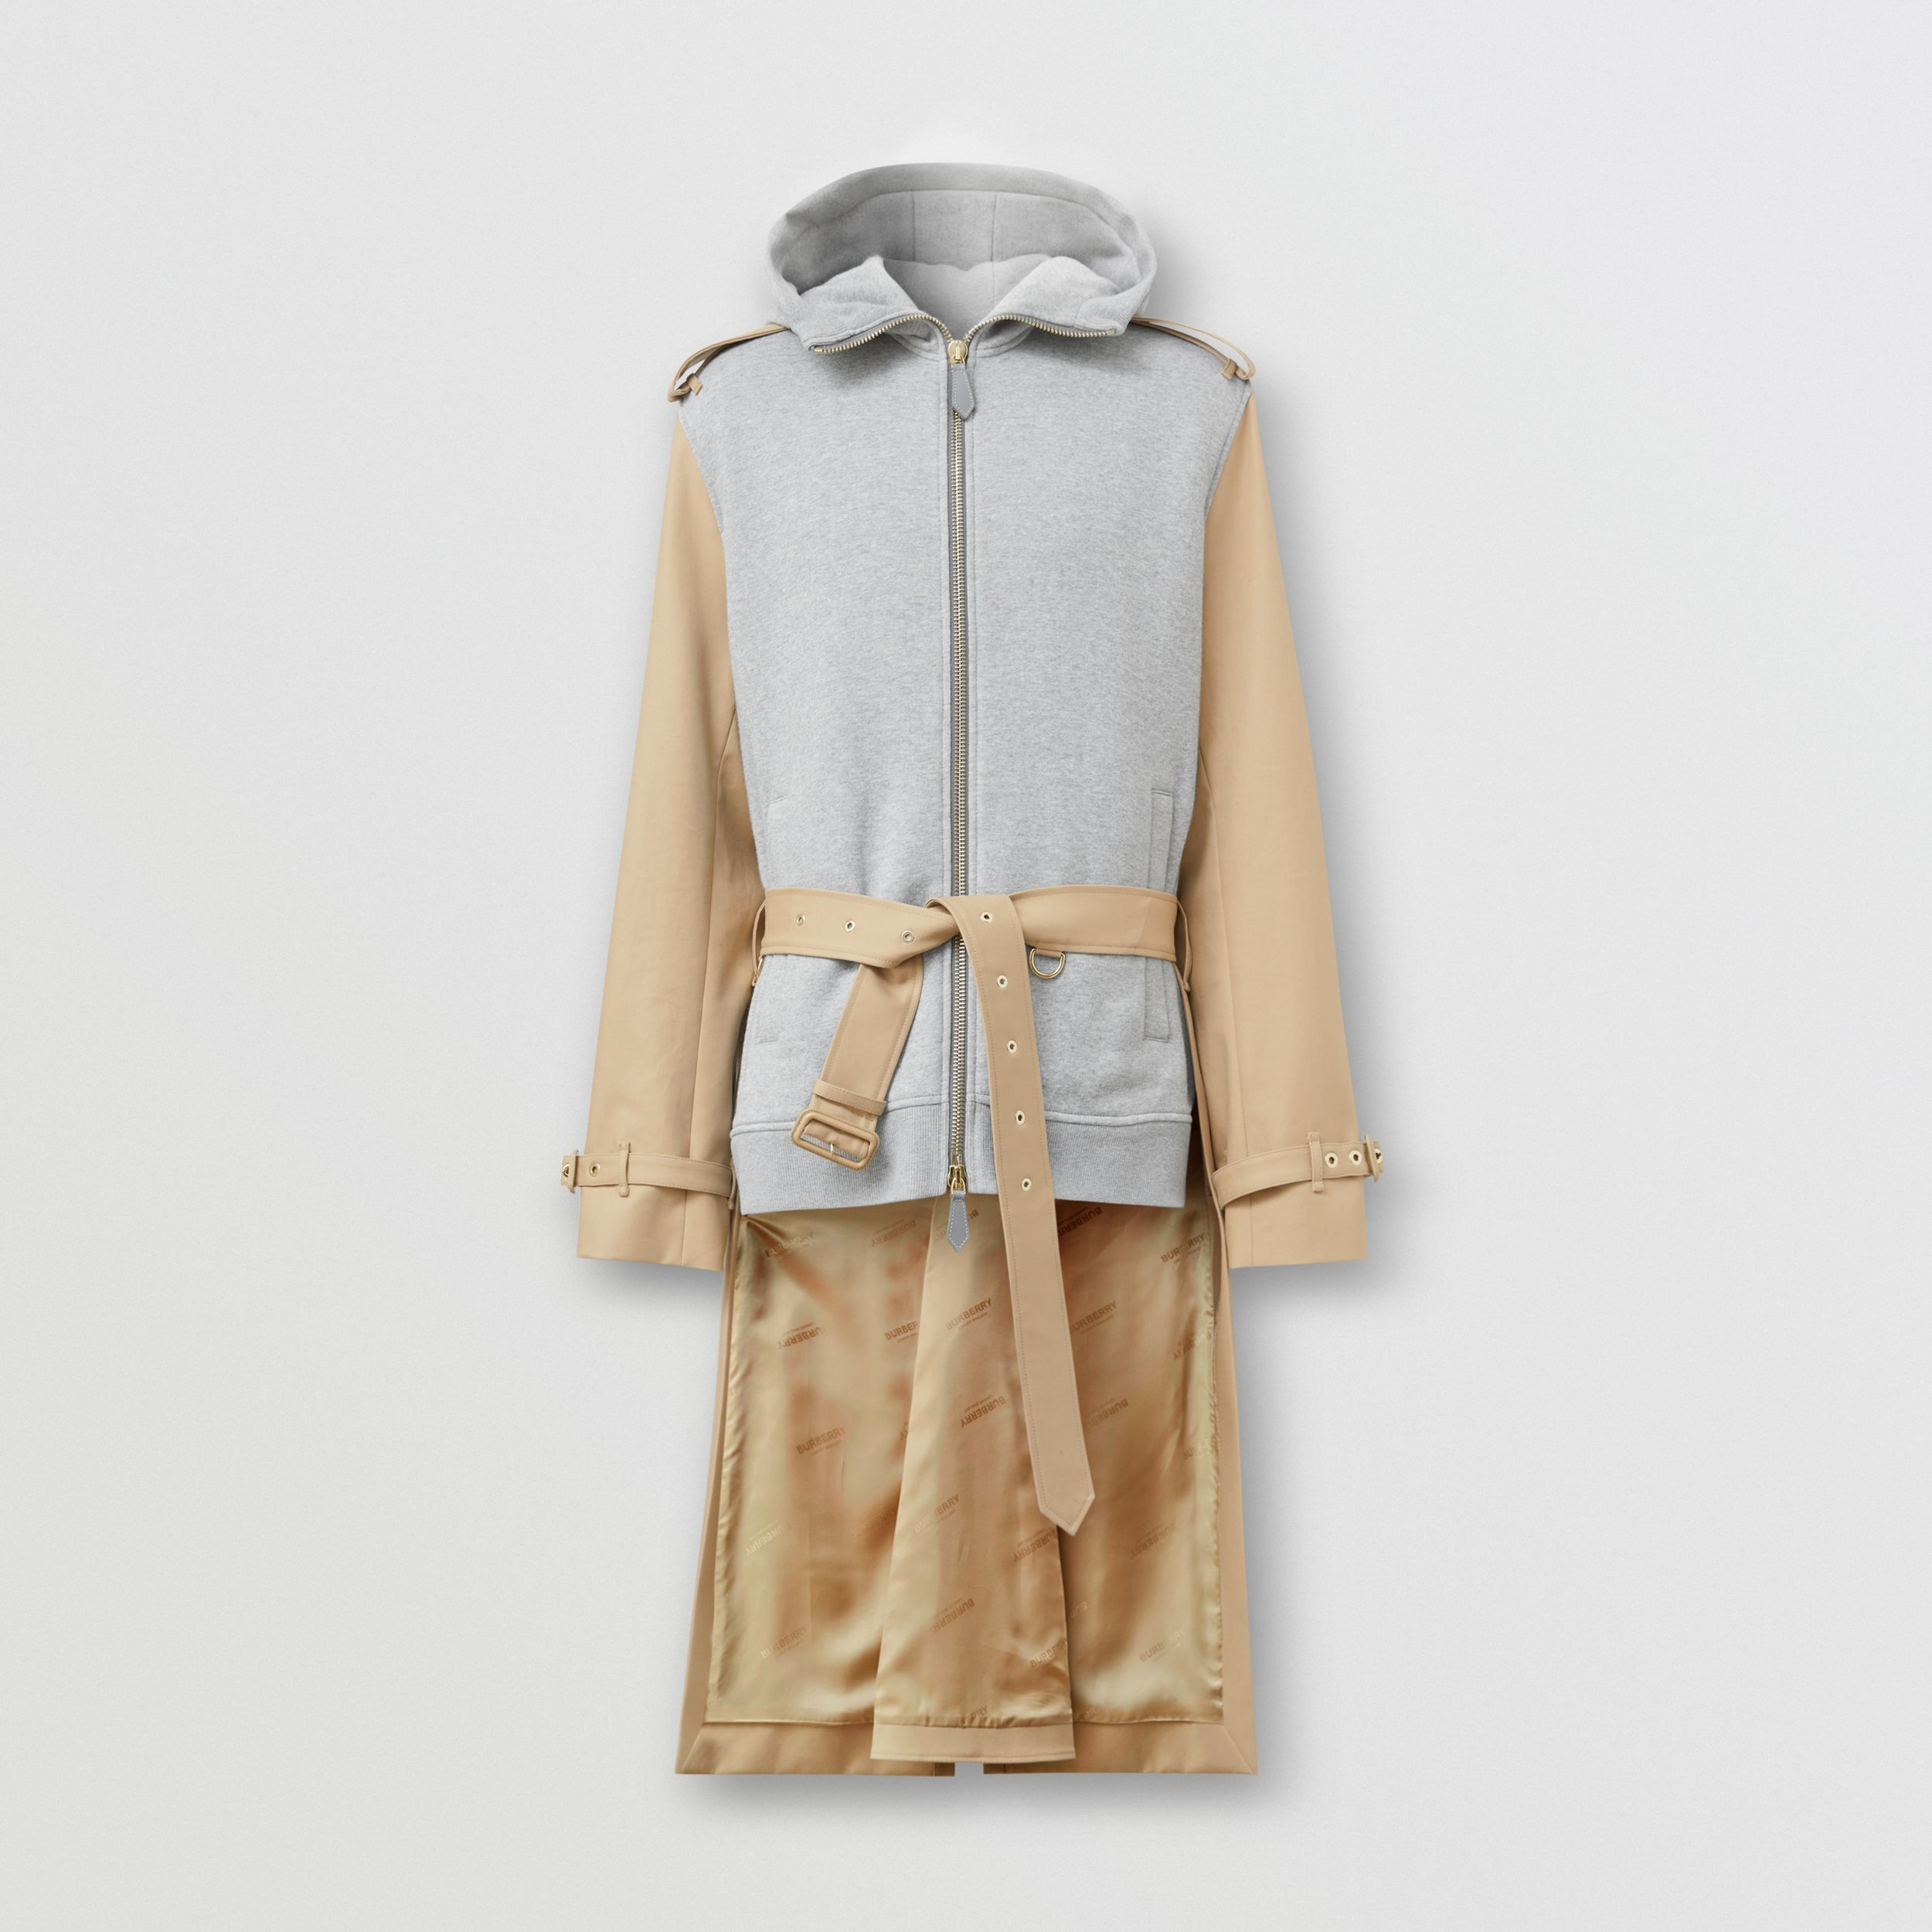 Cotton and Jersey Reconstructed Trench Coat in Soft Fawn | Burberry - 4